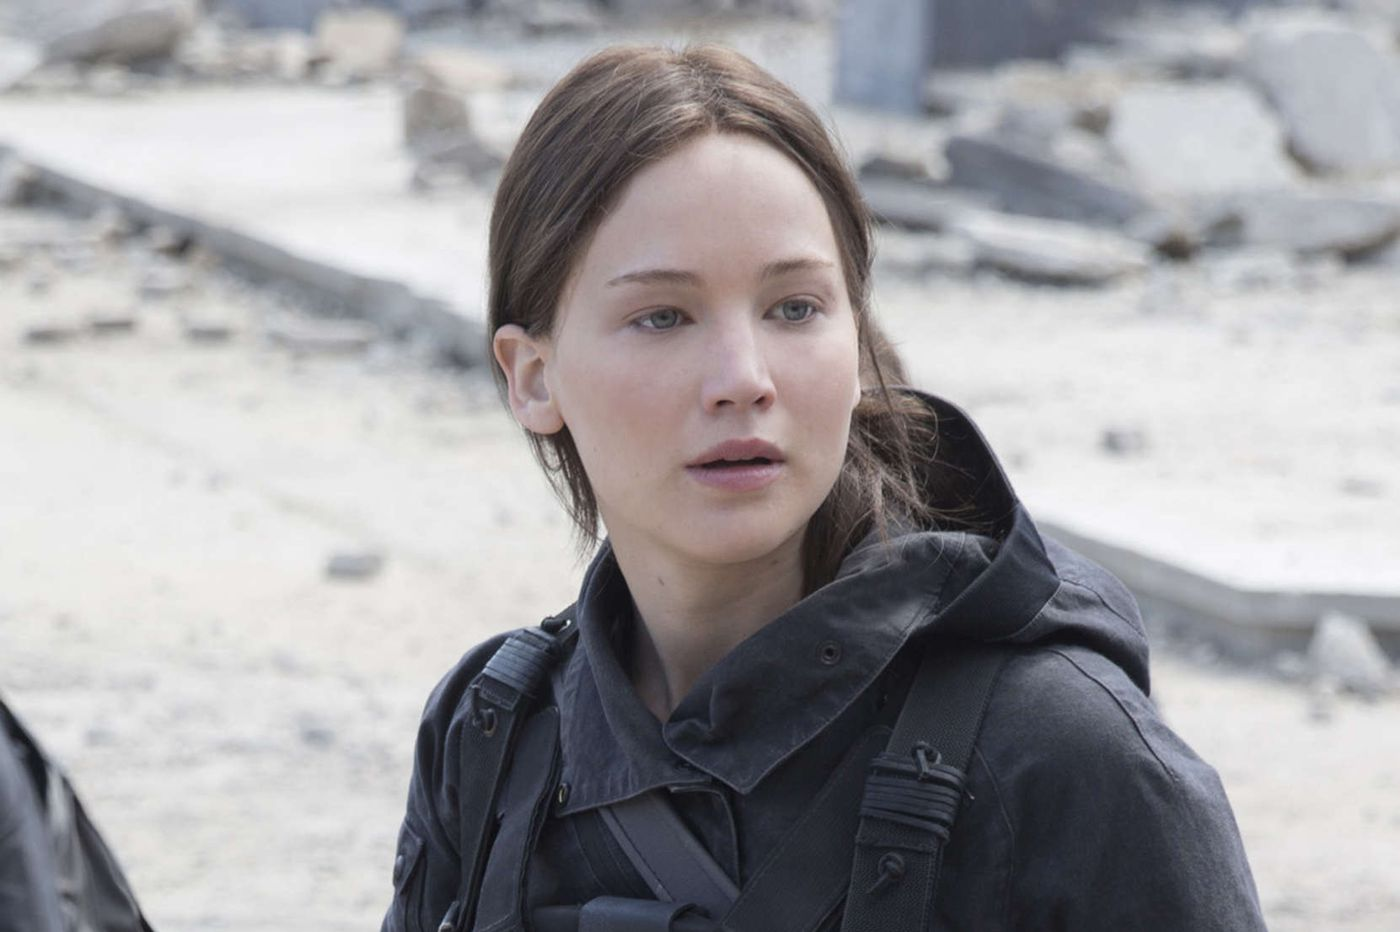 'Mockingjay 2' crushes in movies, Adele crushes in music